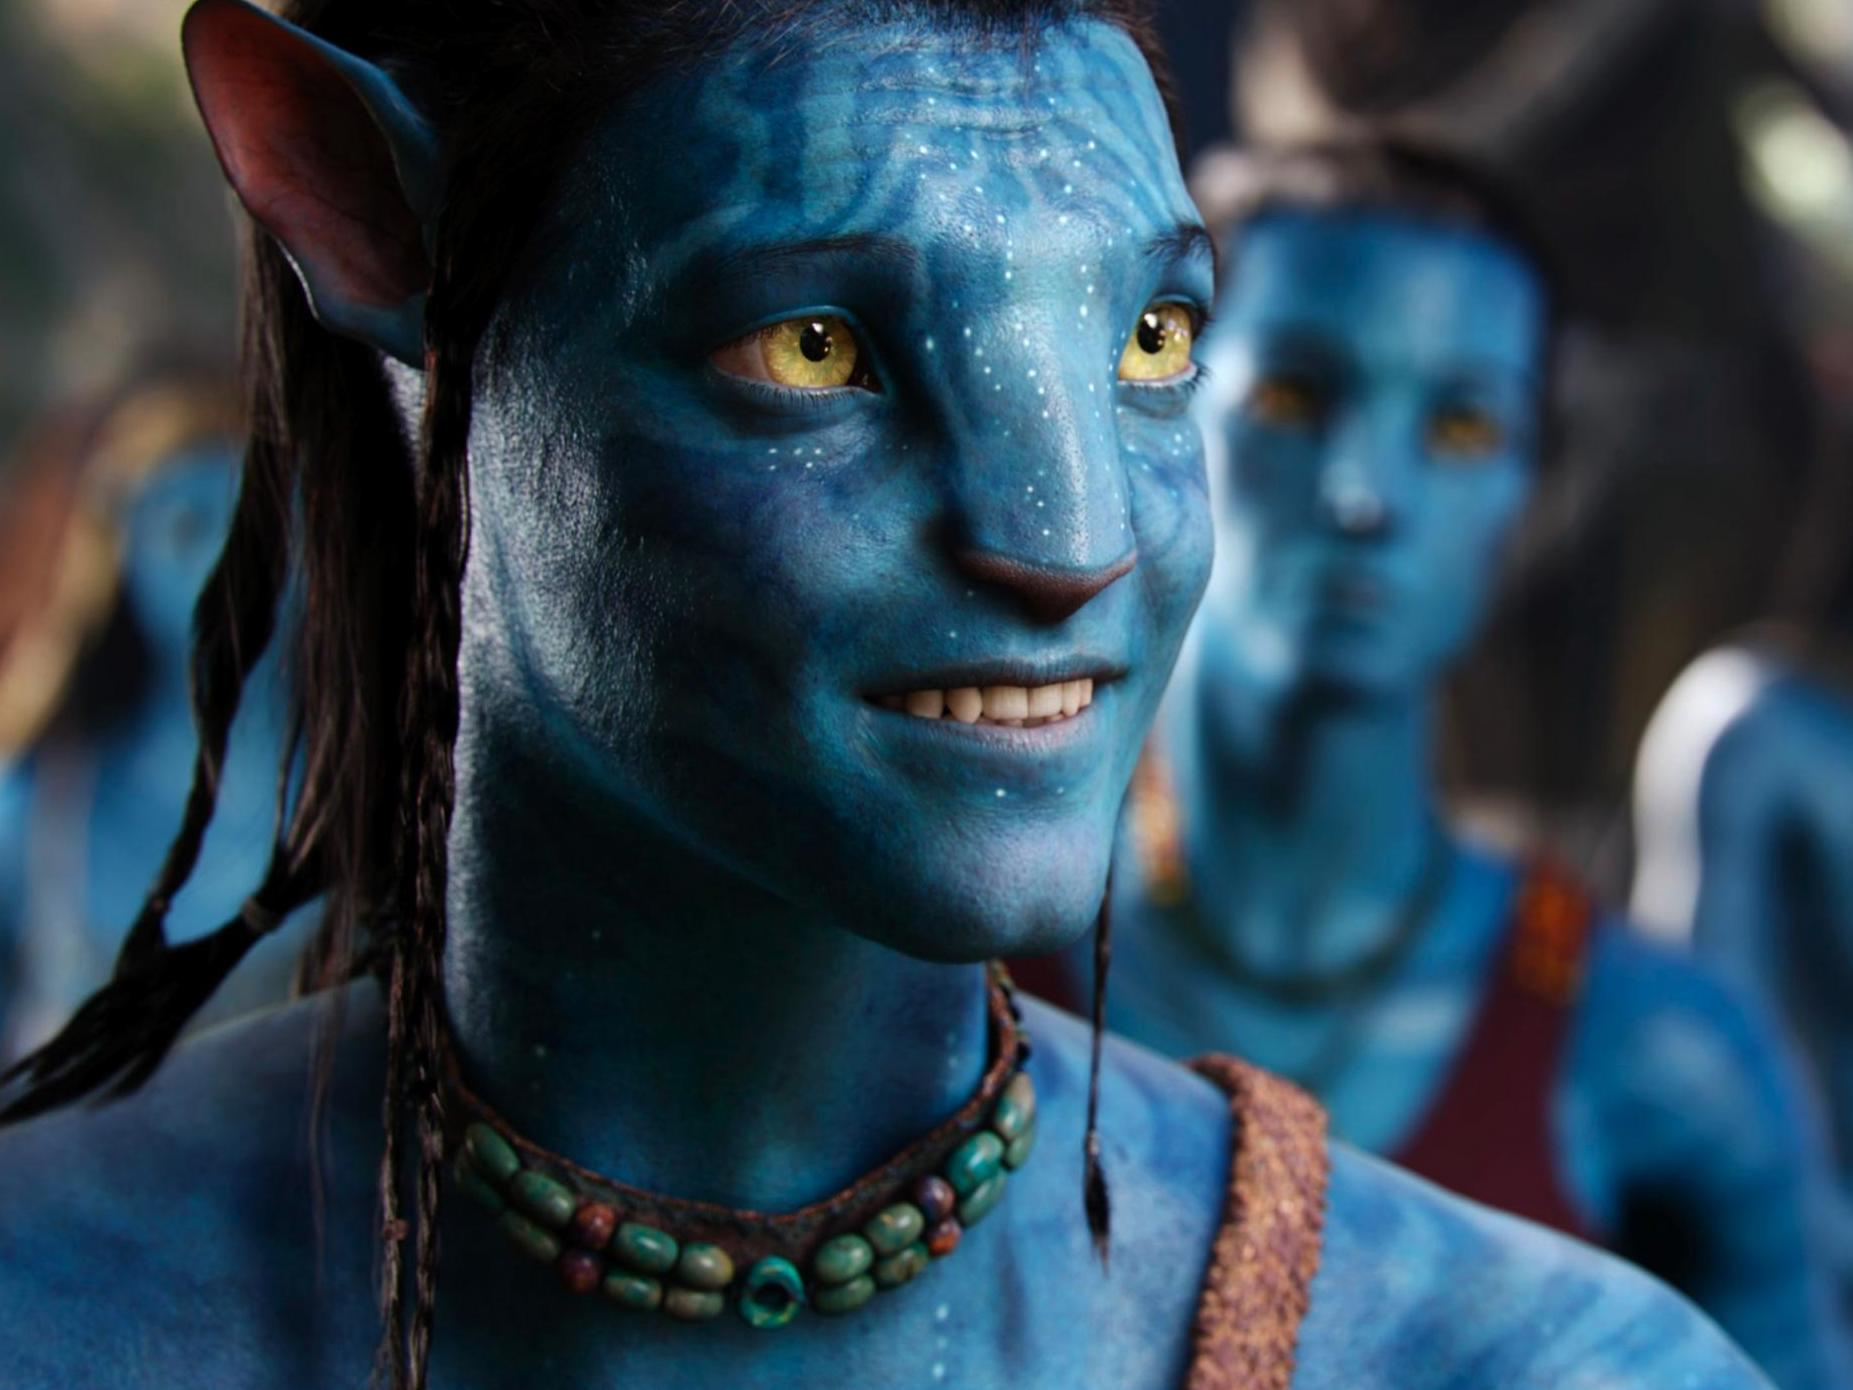 Avatar 4 and 5: James Cameron sequels might not be happening | The